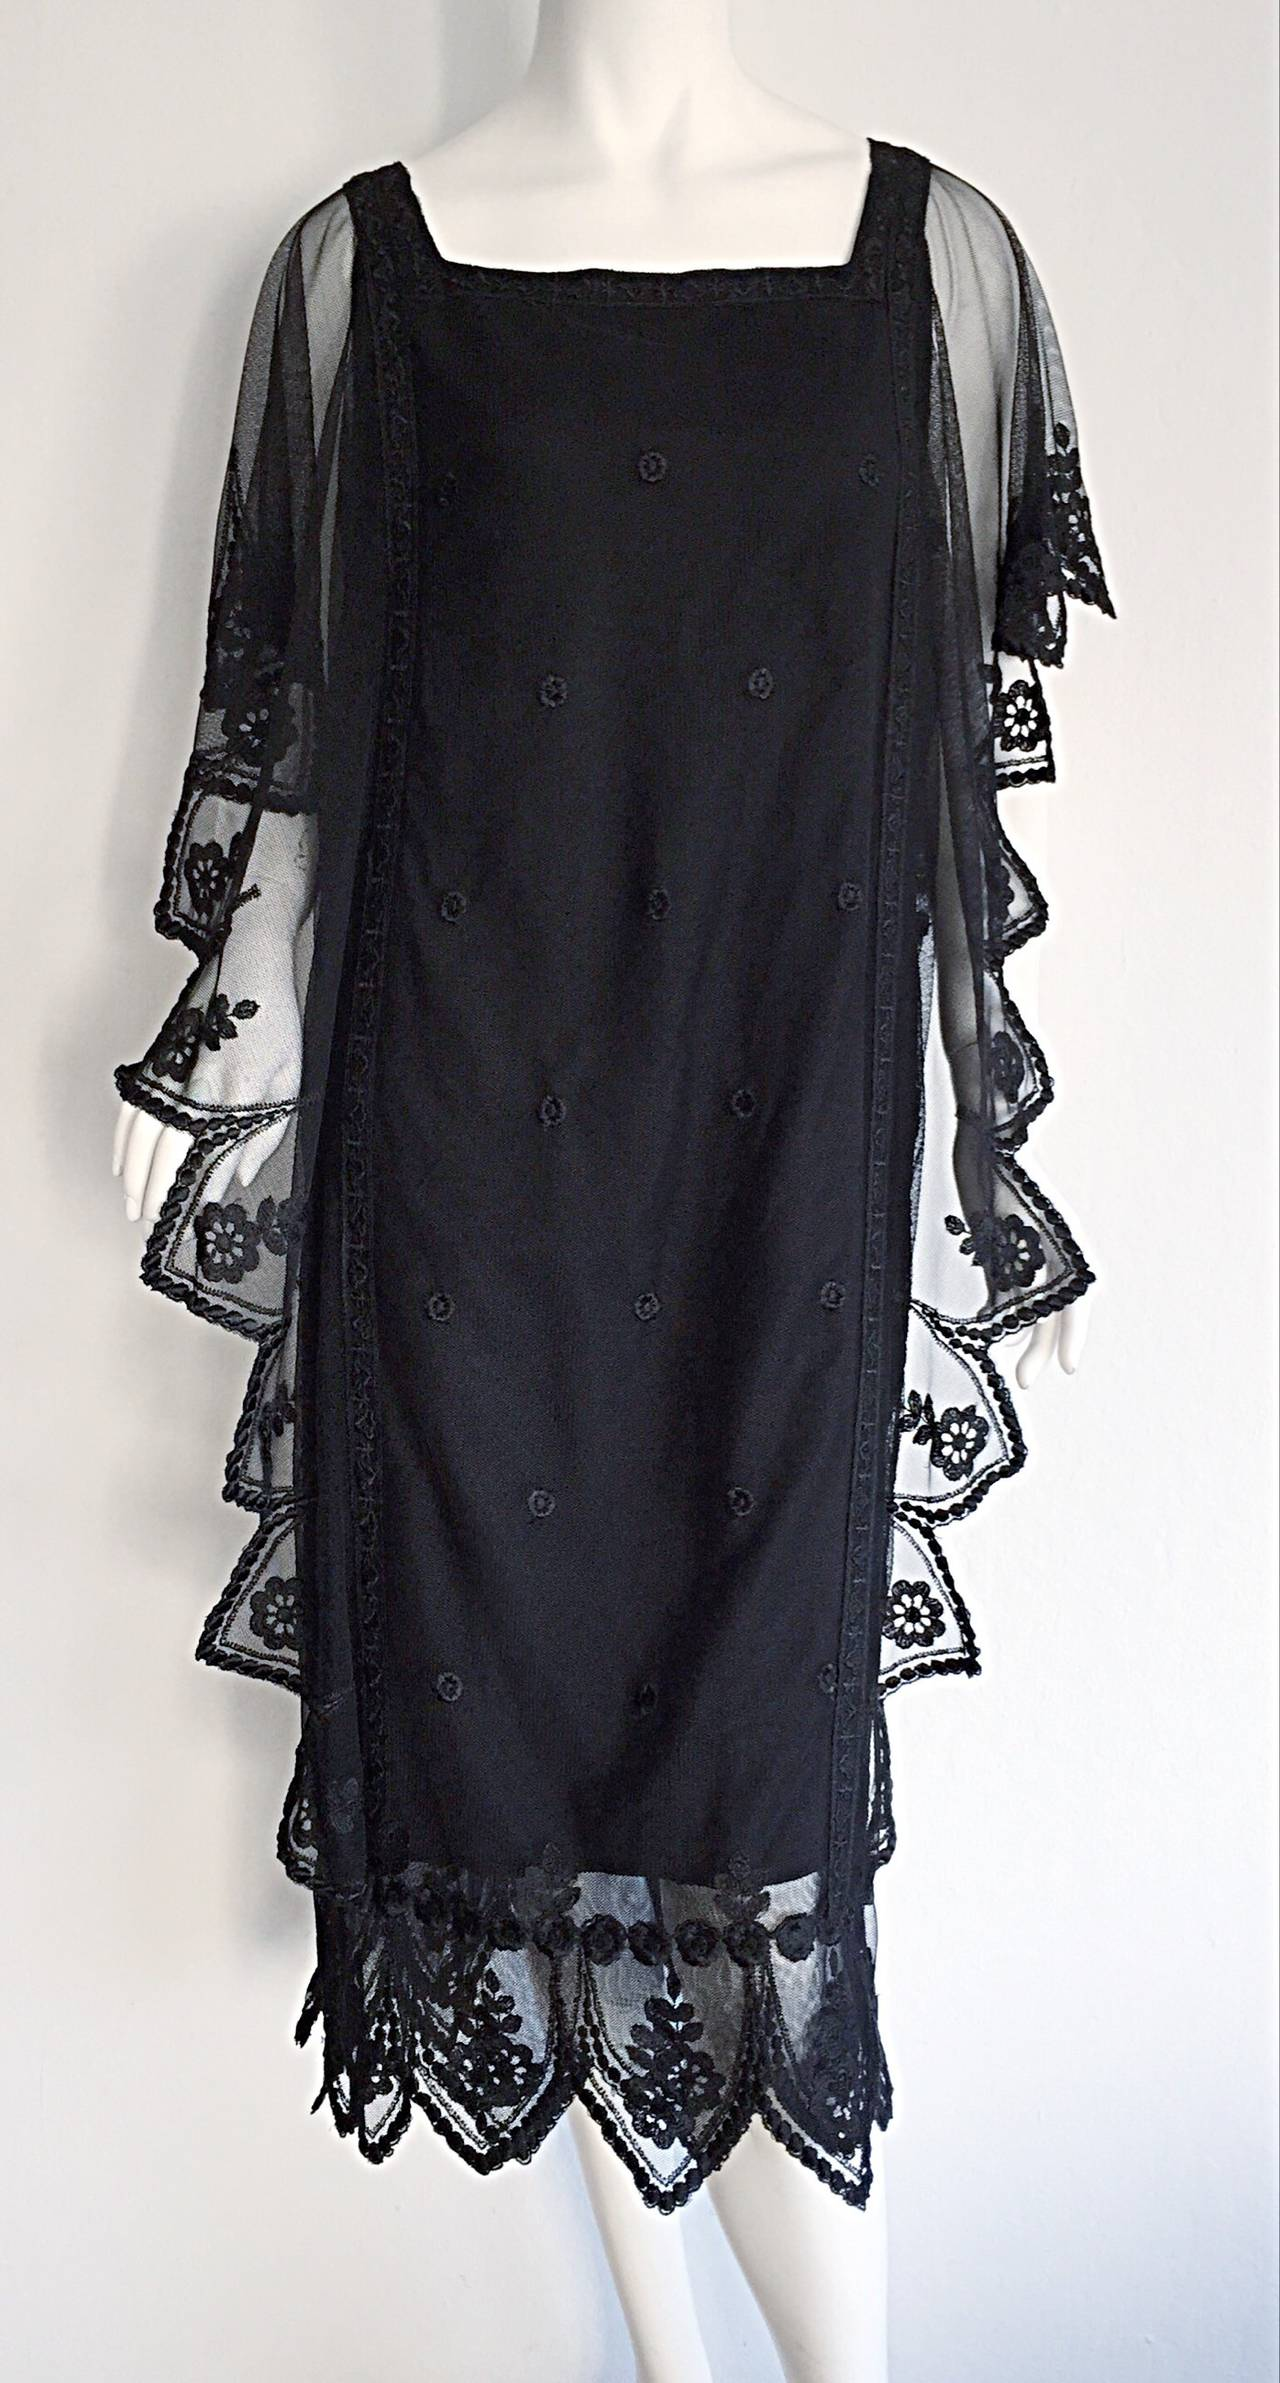 Vintage Giorgio Sant 'Angelo Black Lace ' Flapper ' Style Gatsby Dress 2